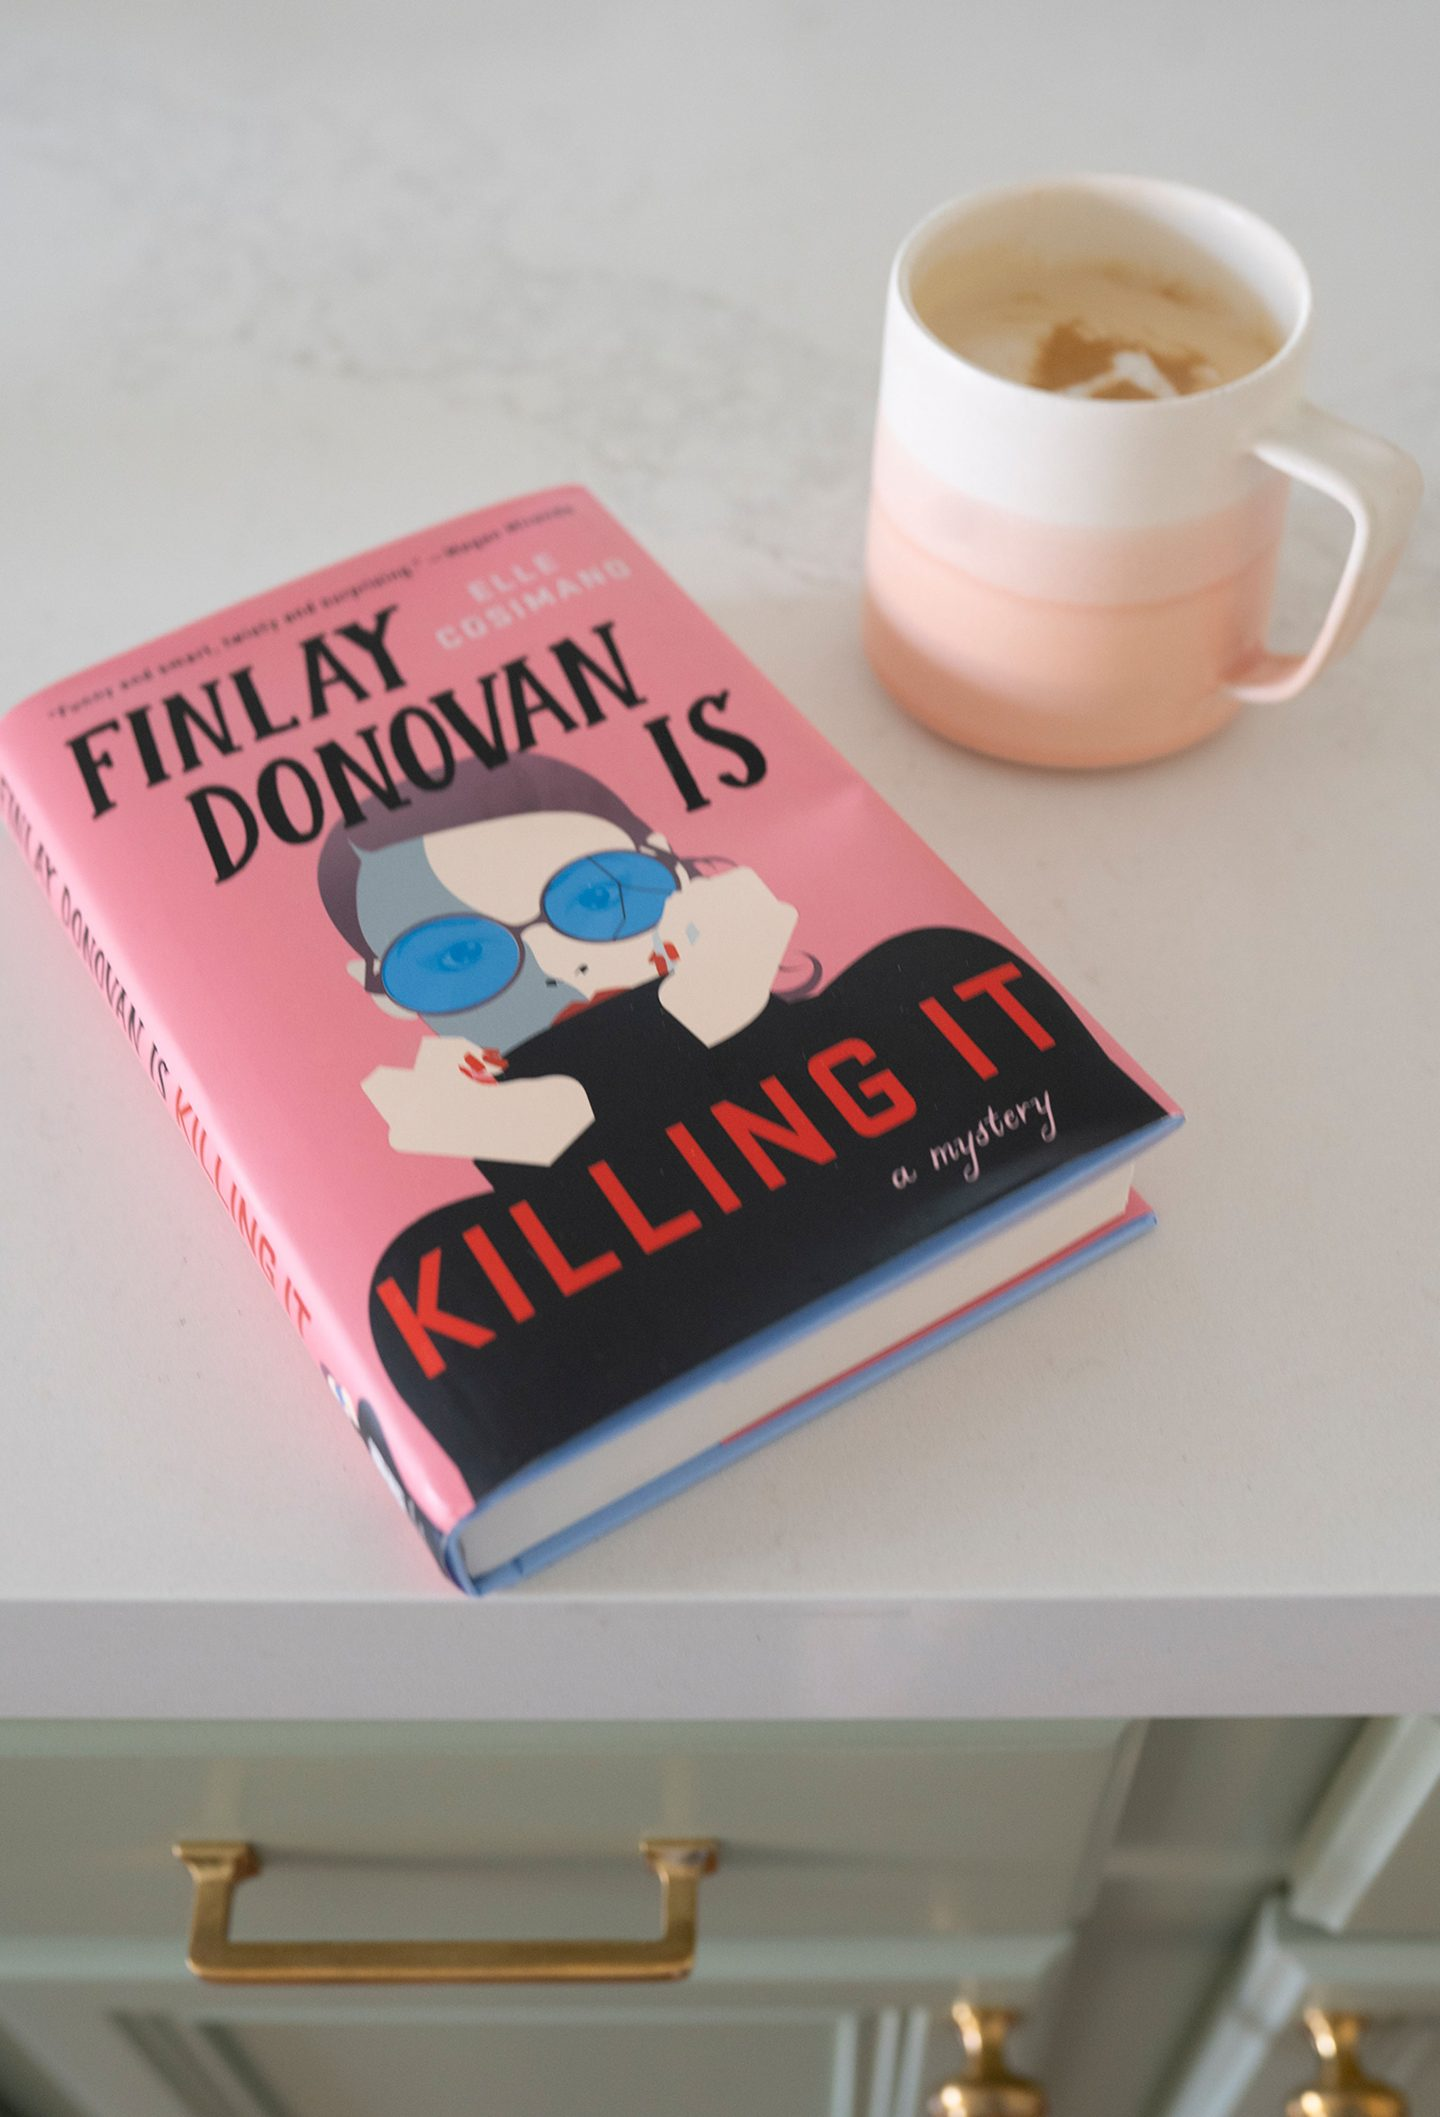 Discussion: Finlay Donovan is Killing It